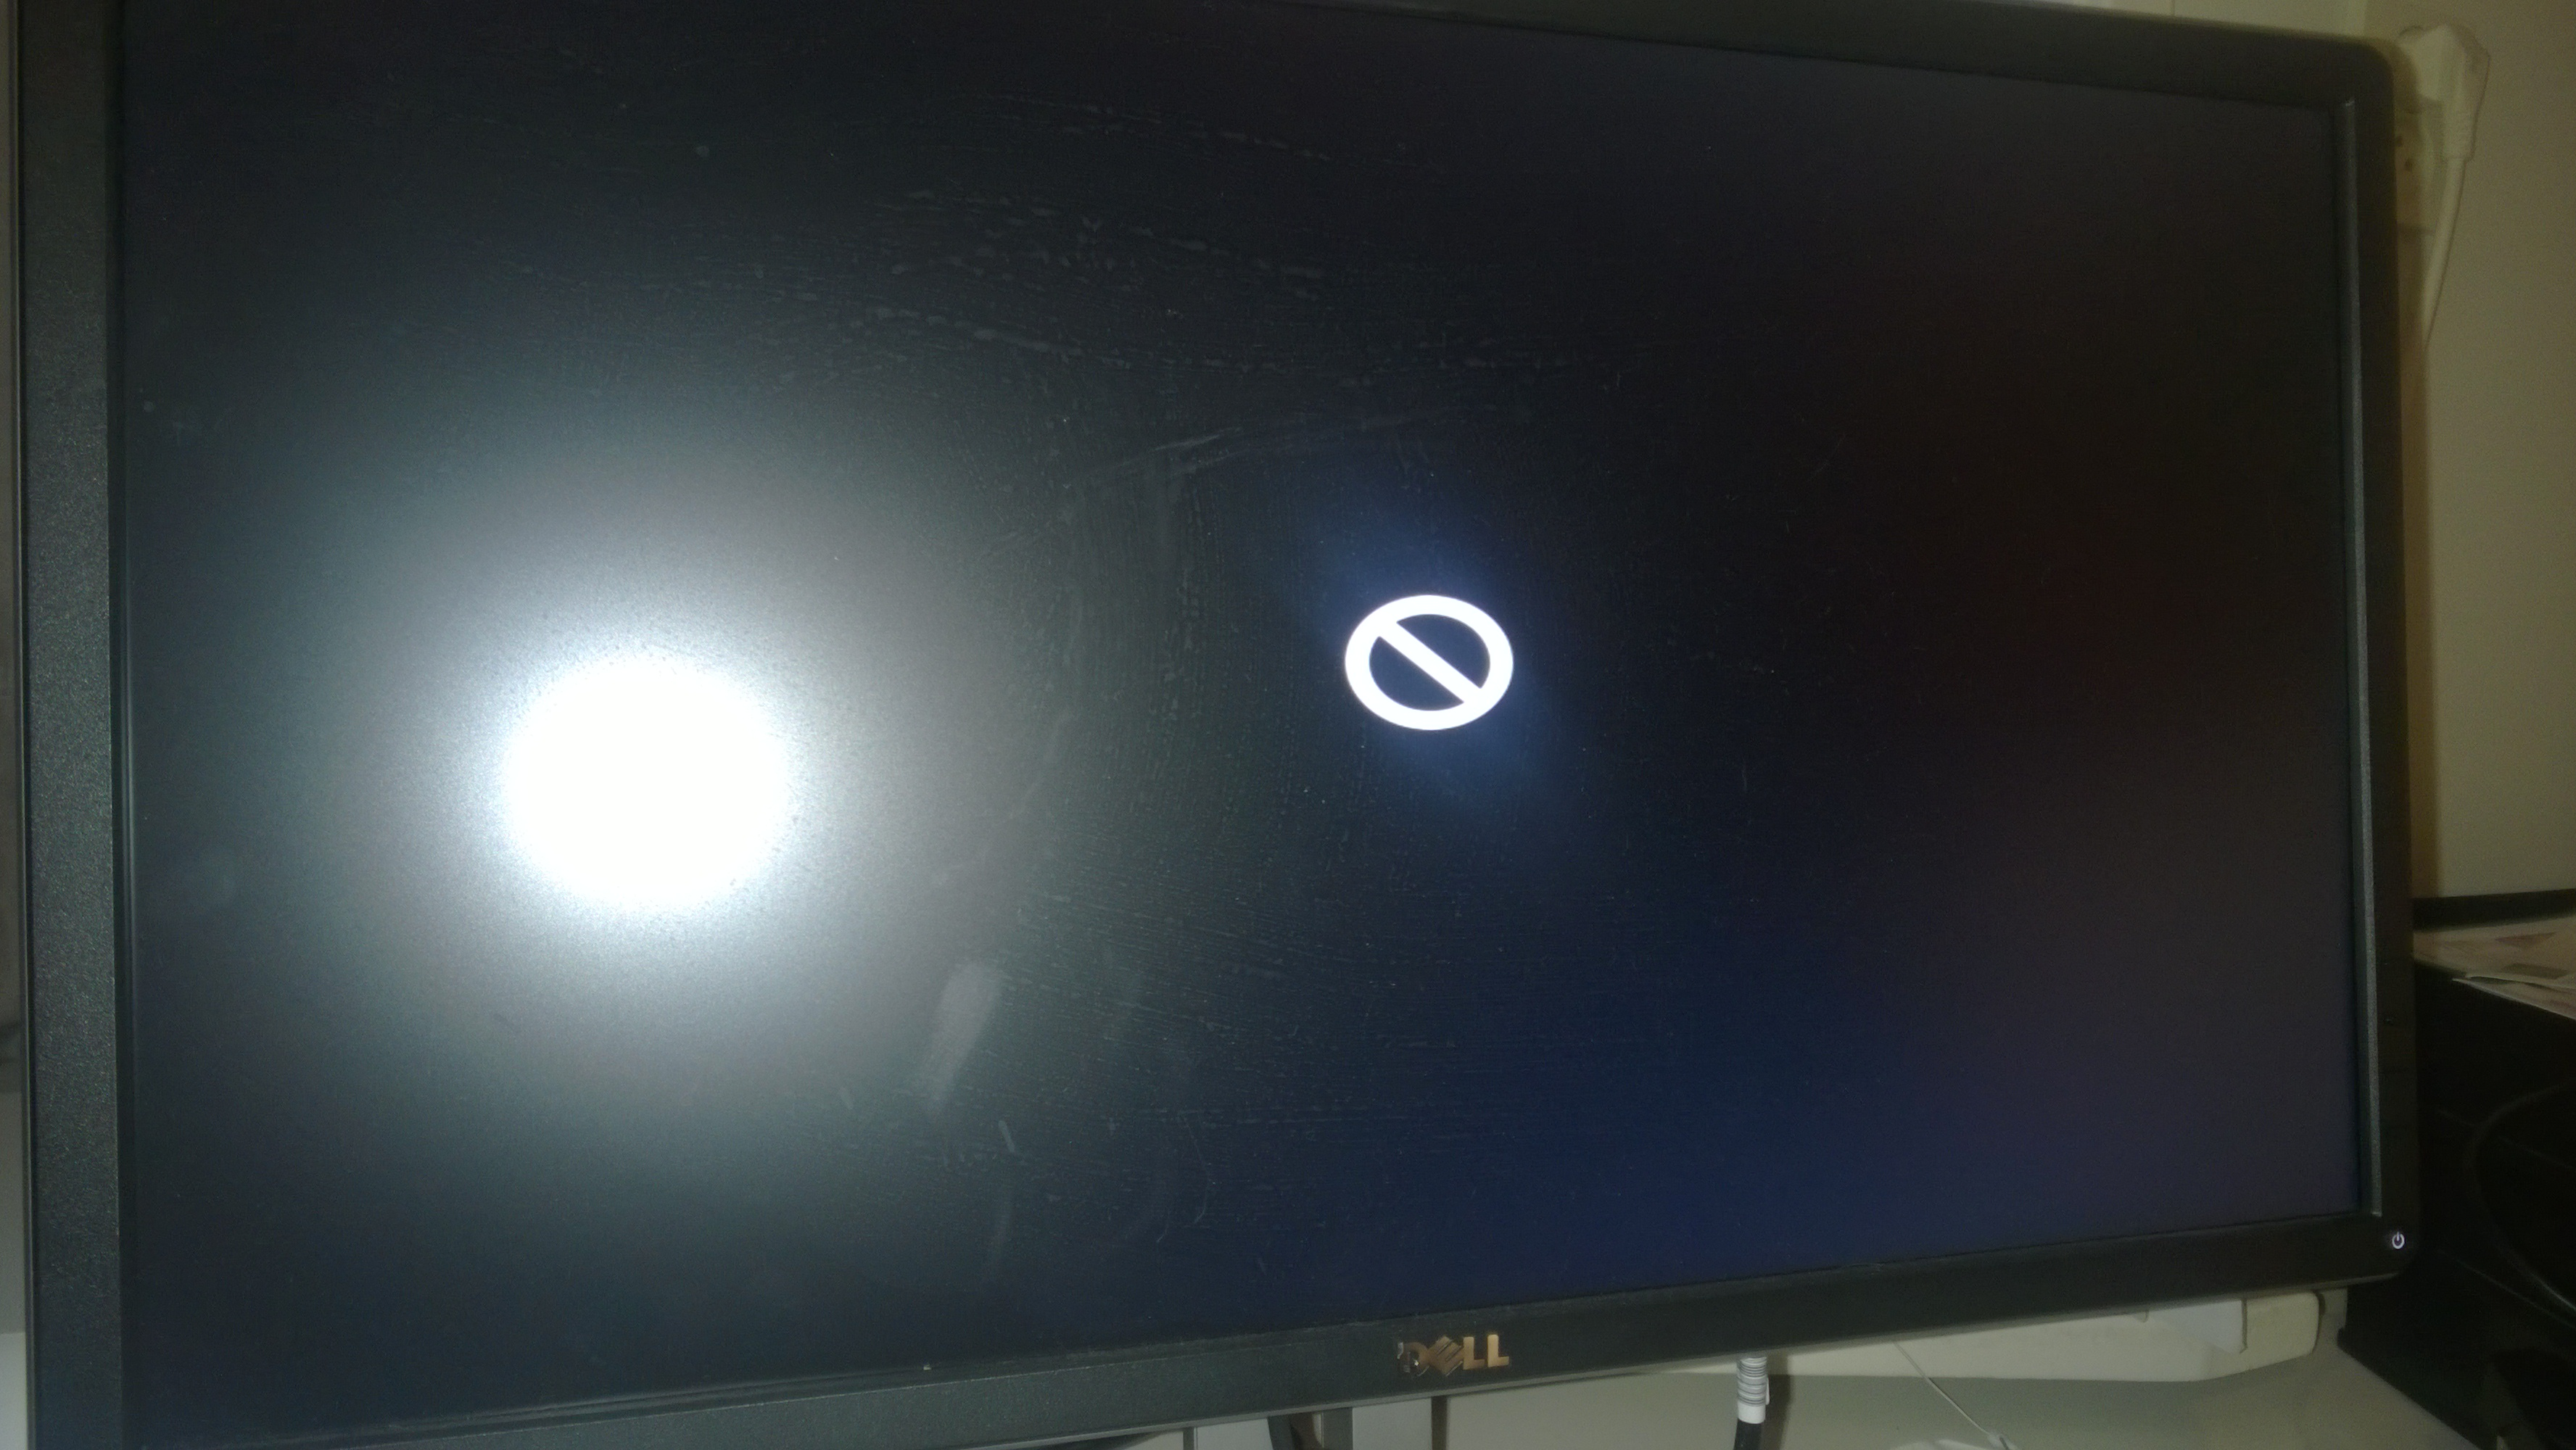 Help with my fist Hackintosh - Stuck at apple logo after